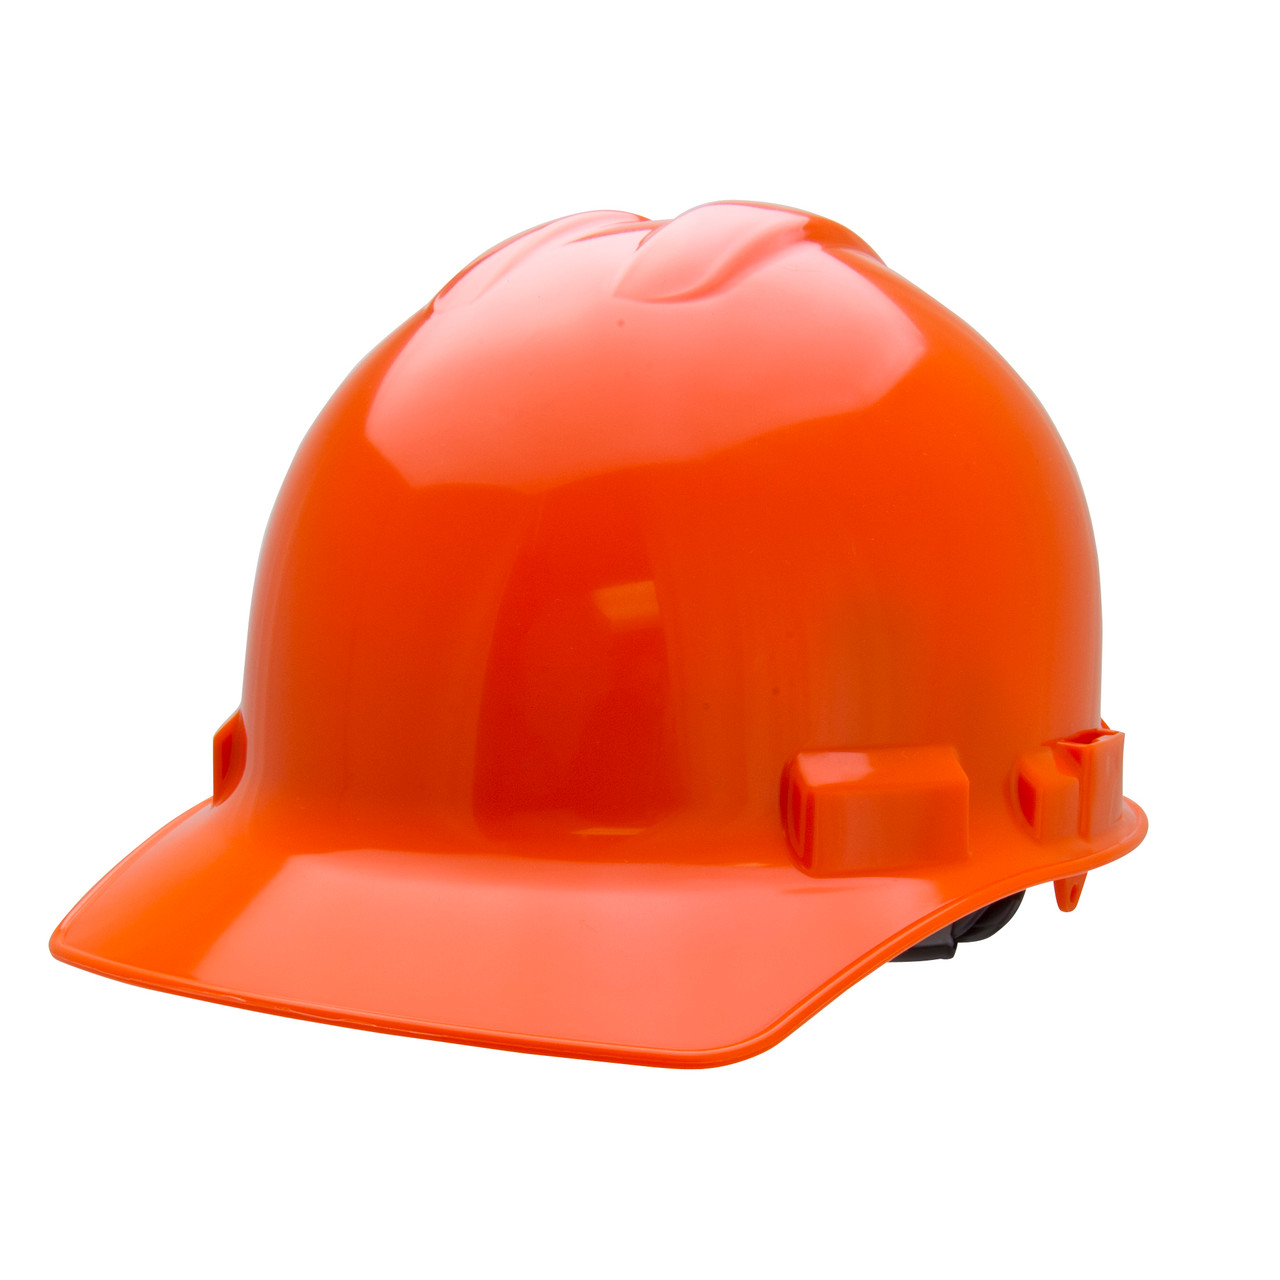 Orange Hard Hat Helmet Style Made in the USA